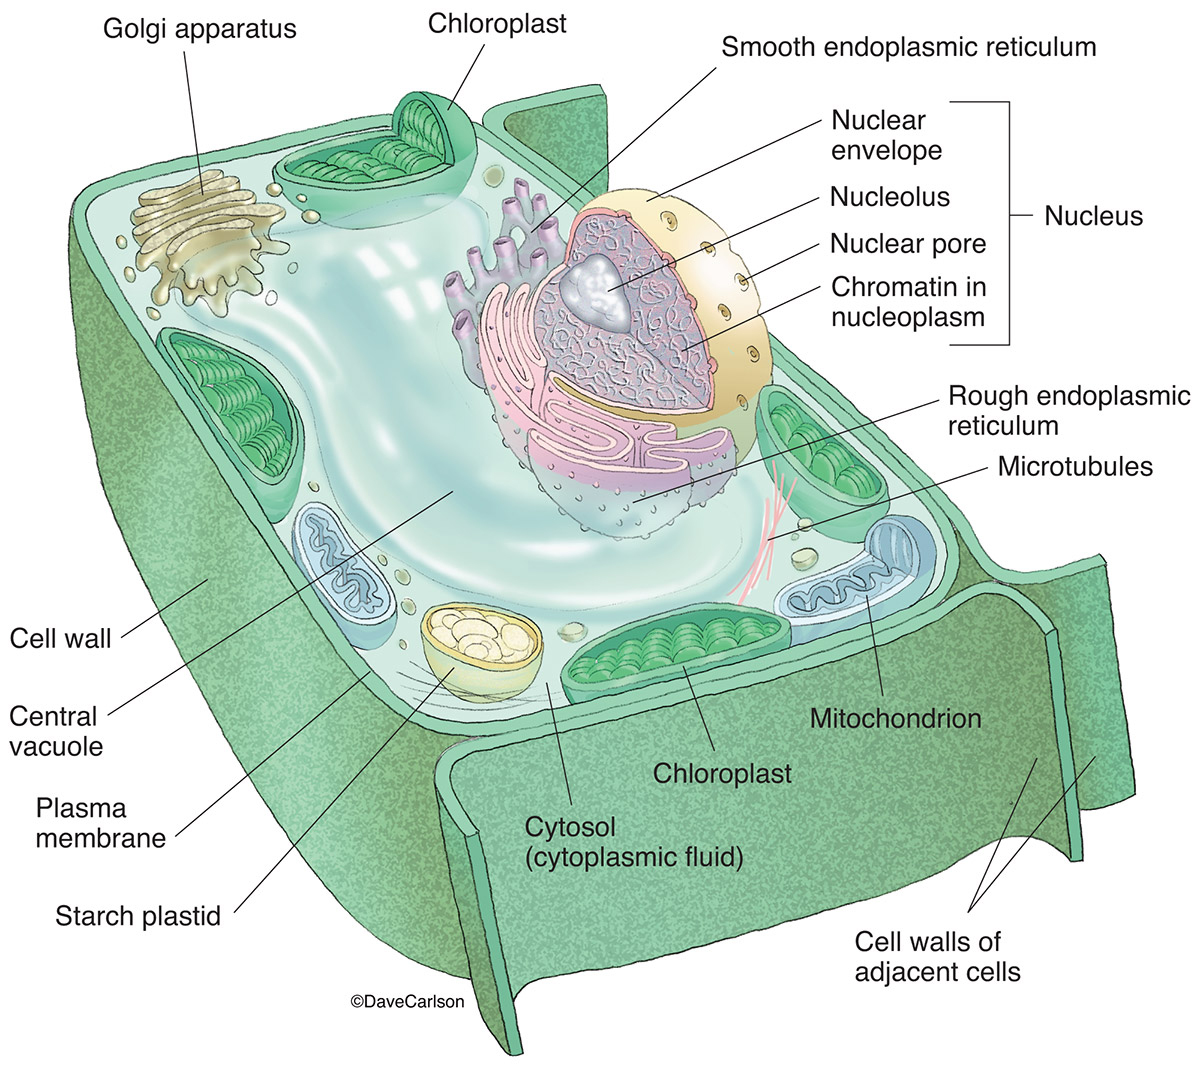 Anatomy cell structure images human body anatomy diagram geoface c4fb2ae5578e plant cell structure carlson stock art ccuart Choice Image